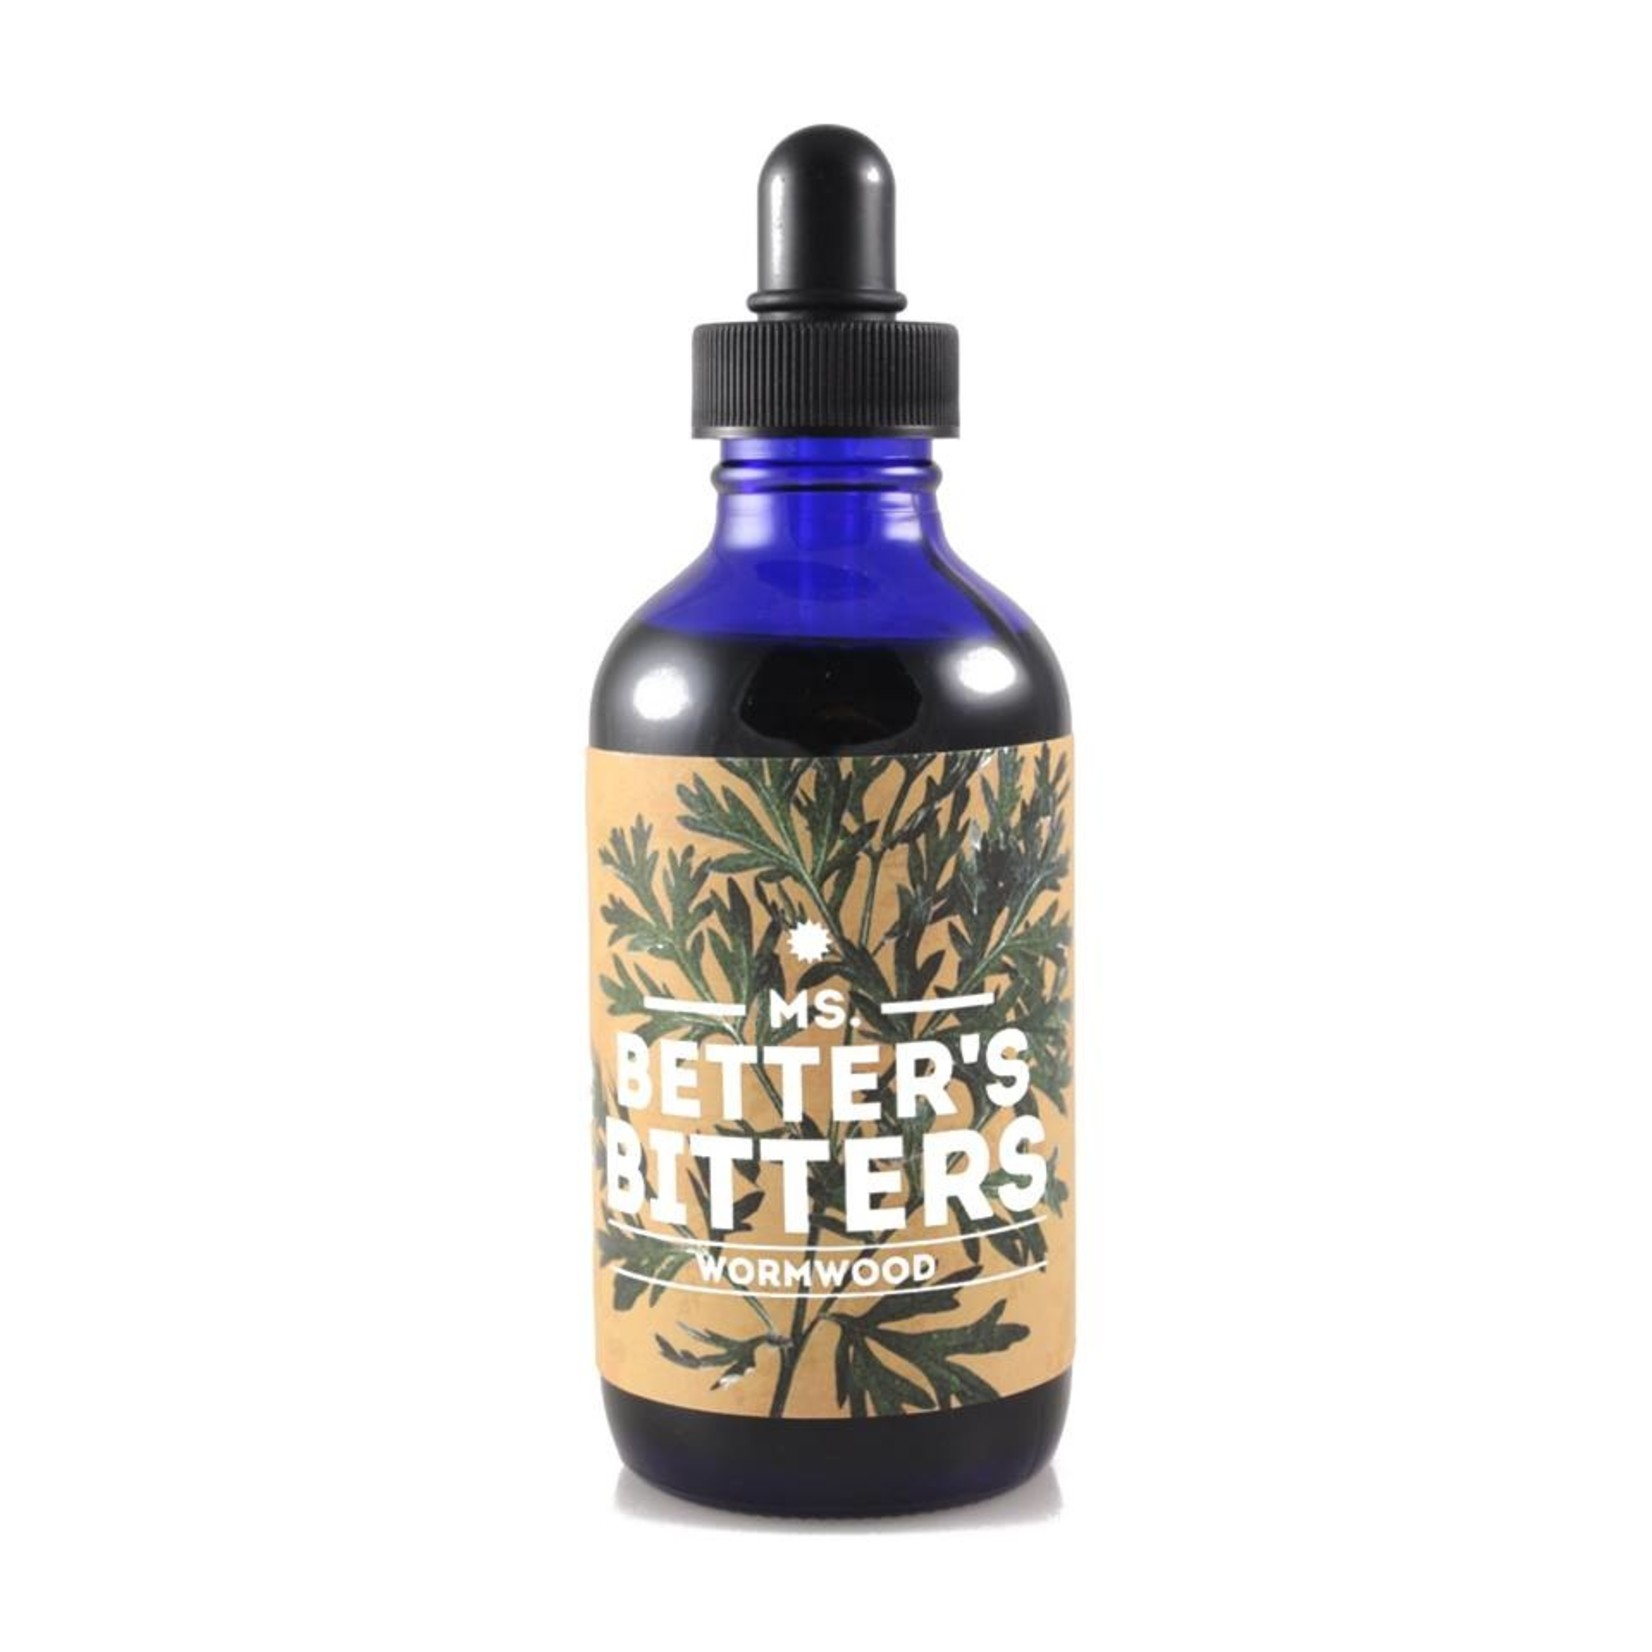 Ms Better's Bitters Ms Better's Bitters Wormwood